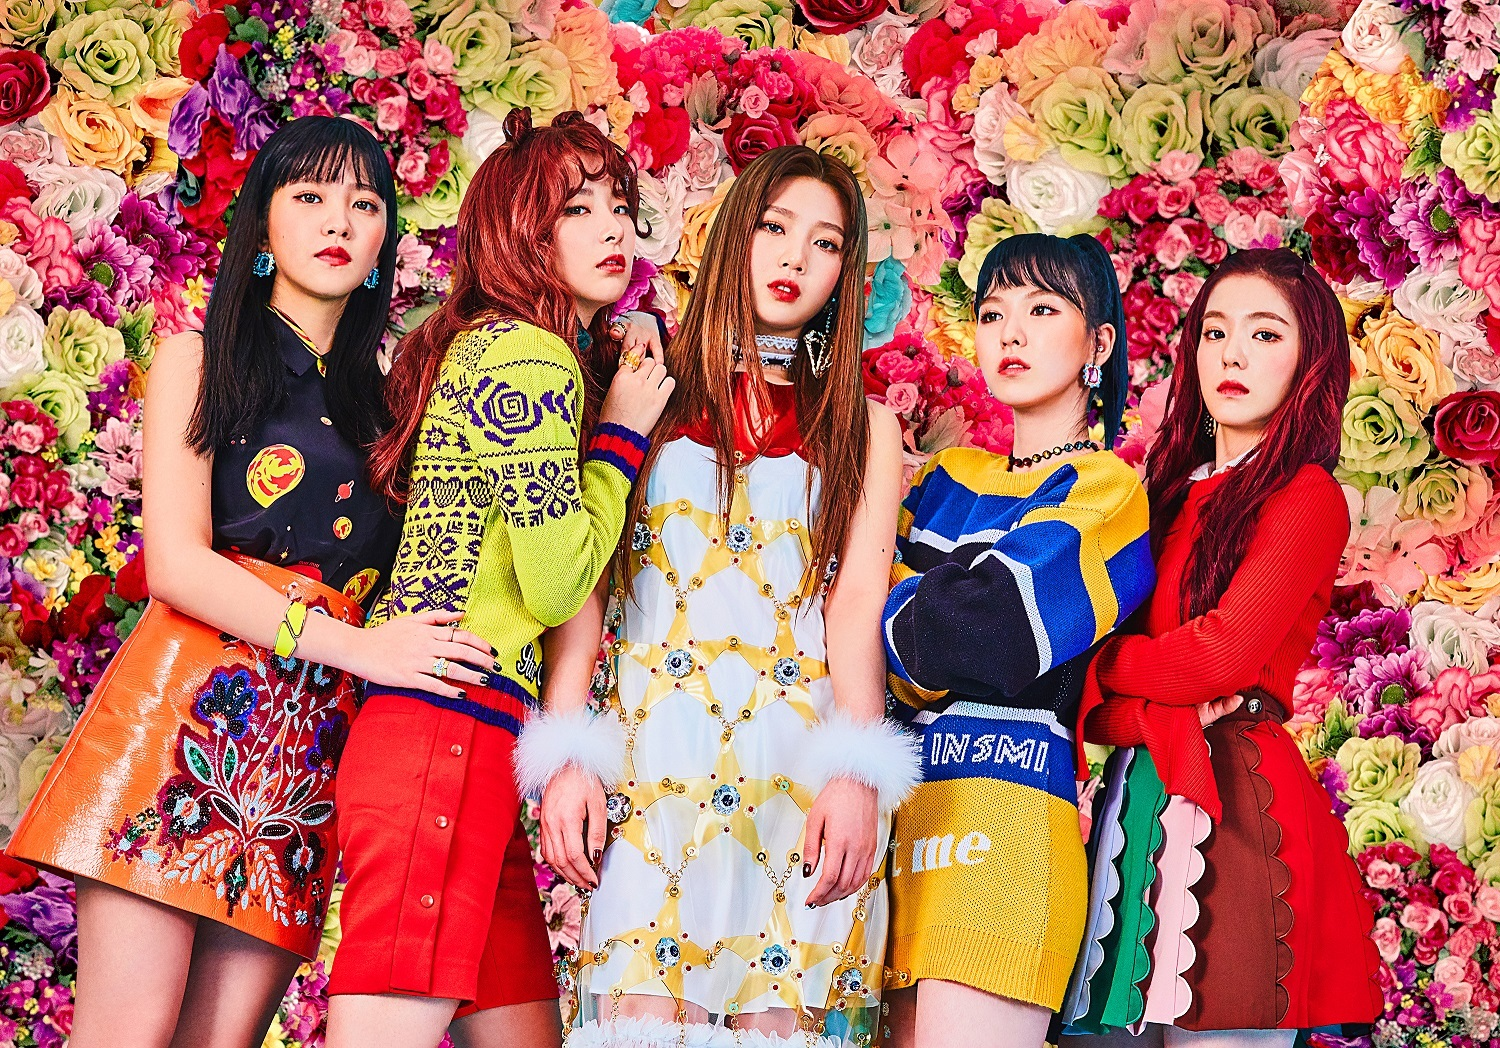 One Red Velvet Fan Fell Victim To A Ticket Scam, Then This Happened